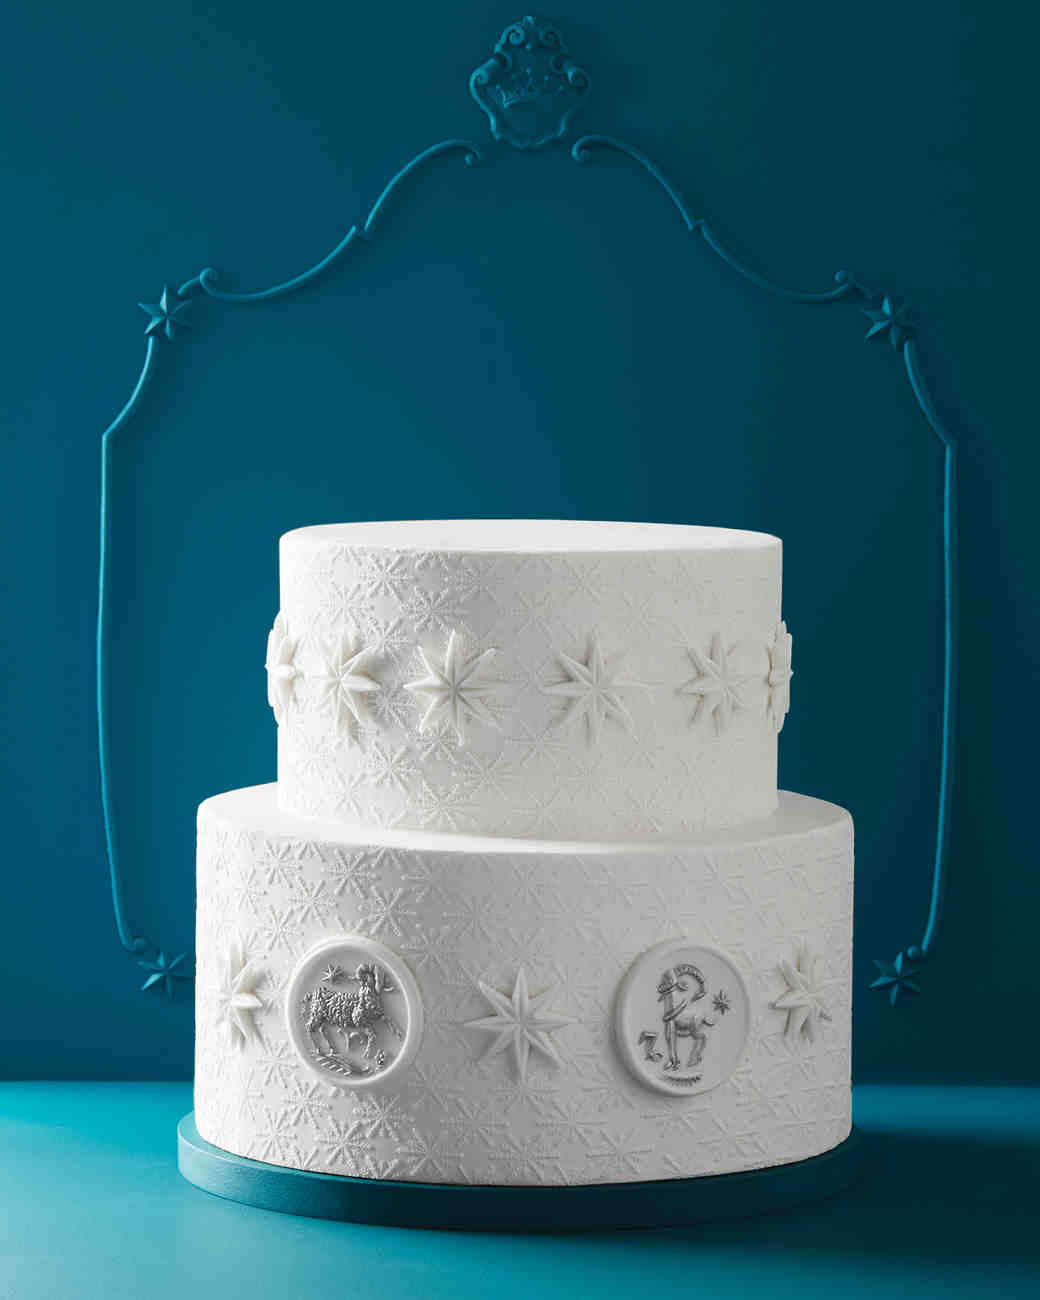 How To Decorate Your Wedding Cake And Desserts With Springerle